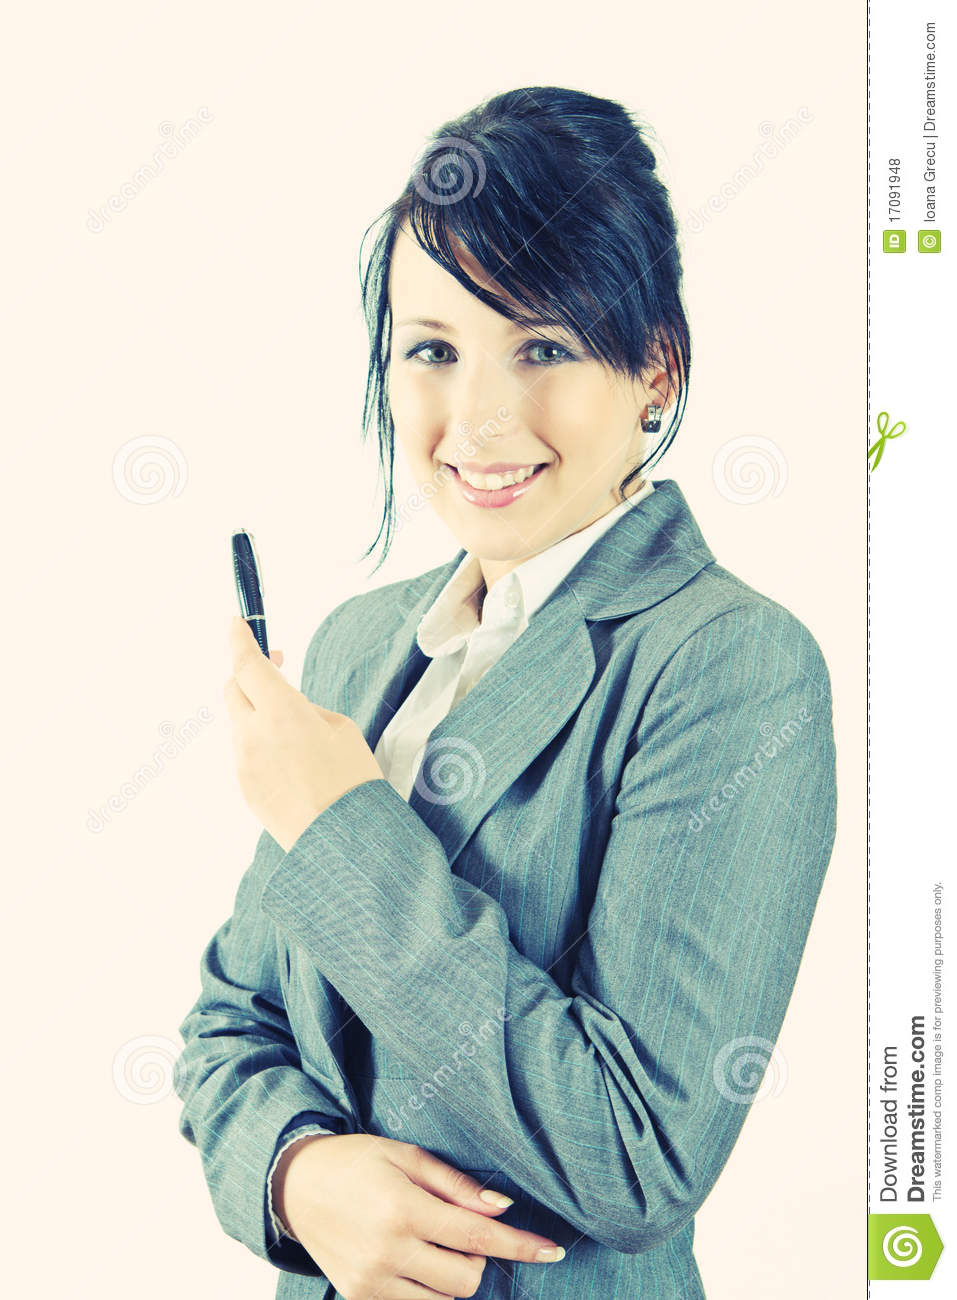 Young business woman smiling holding a pen